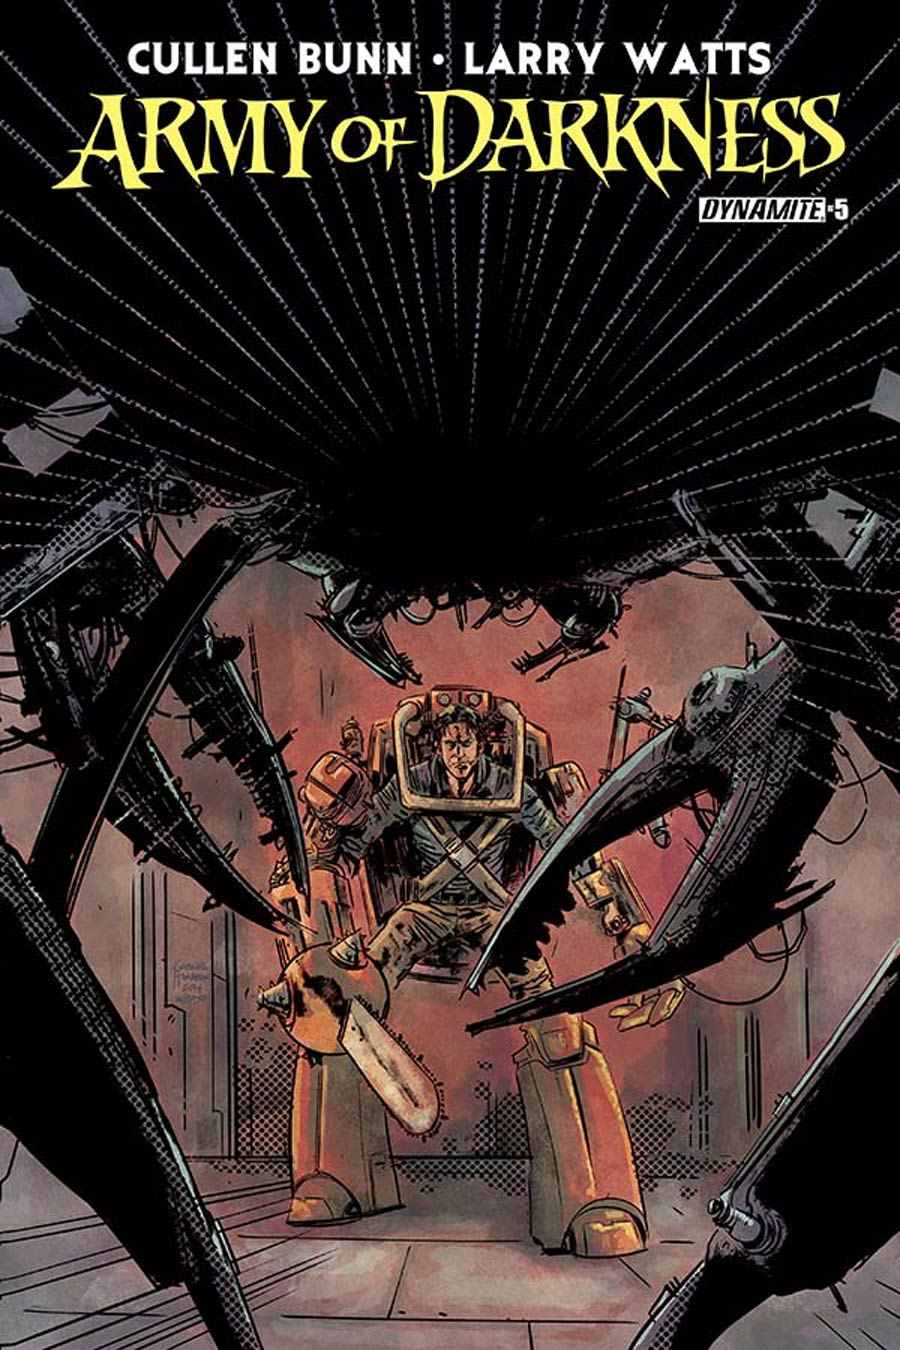 Army Of Darkness Vol 4 #5 Cover A Regular Gabriel Hardman Cover